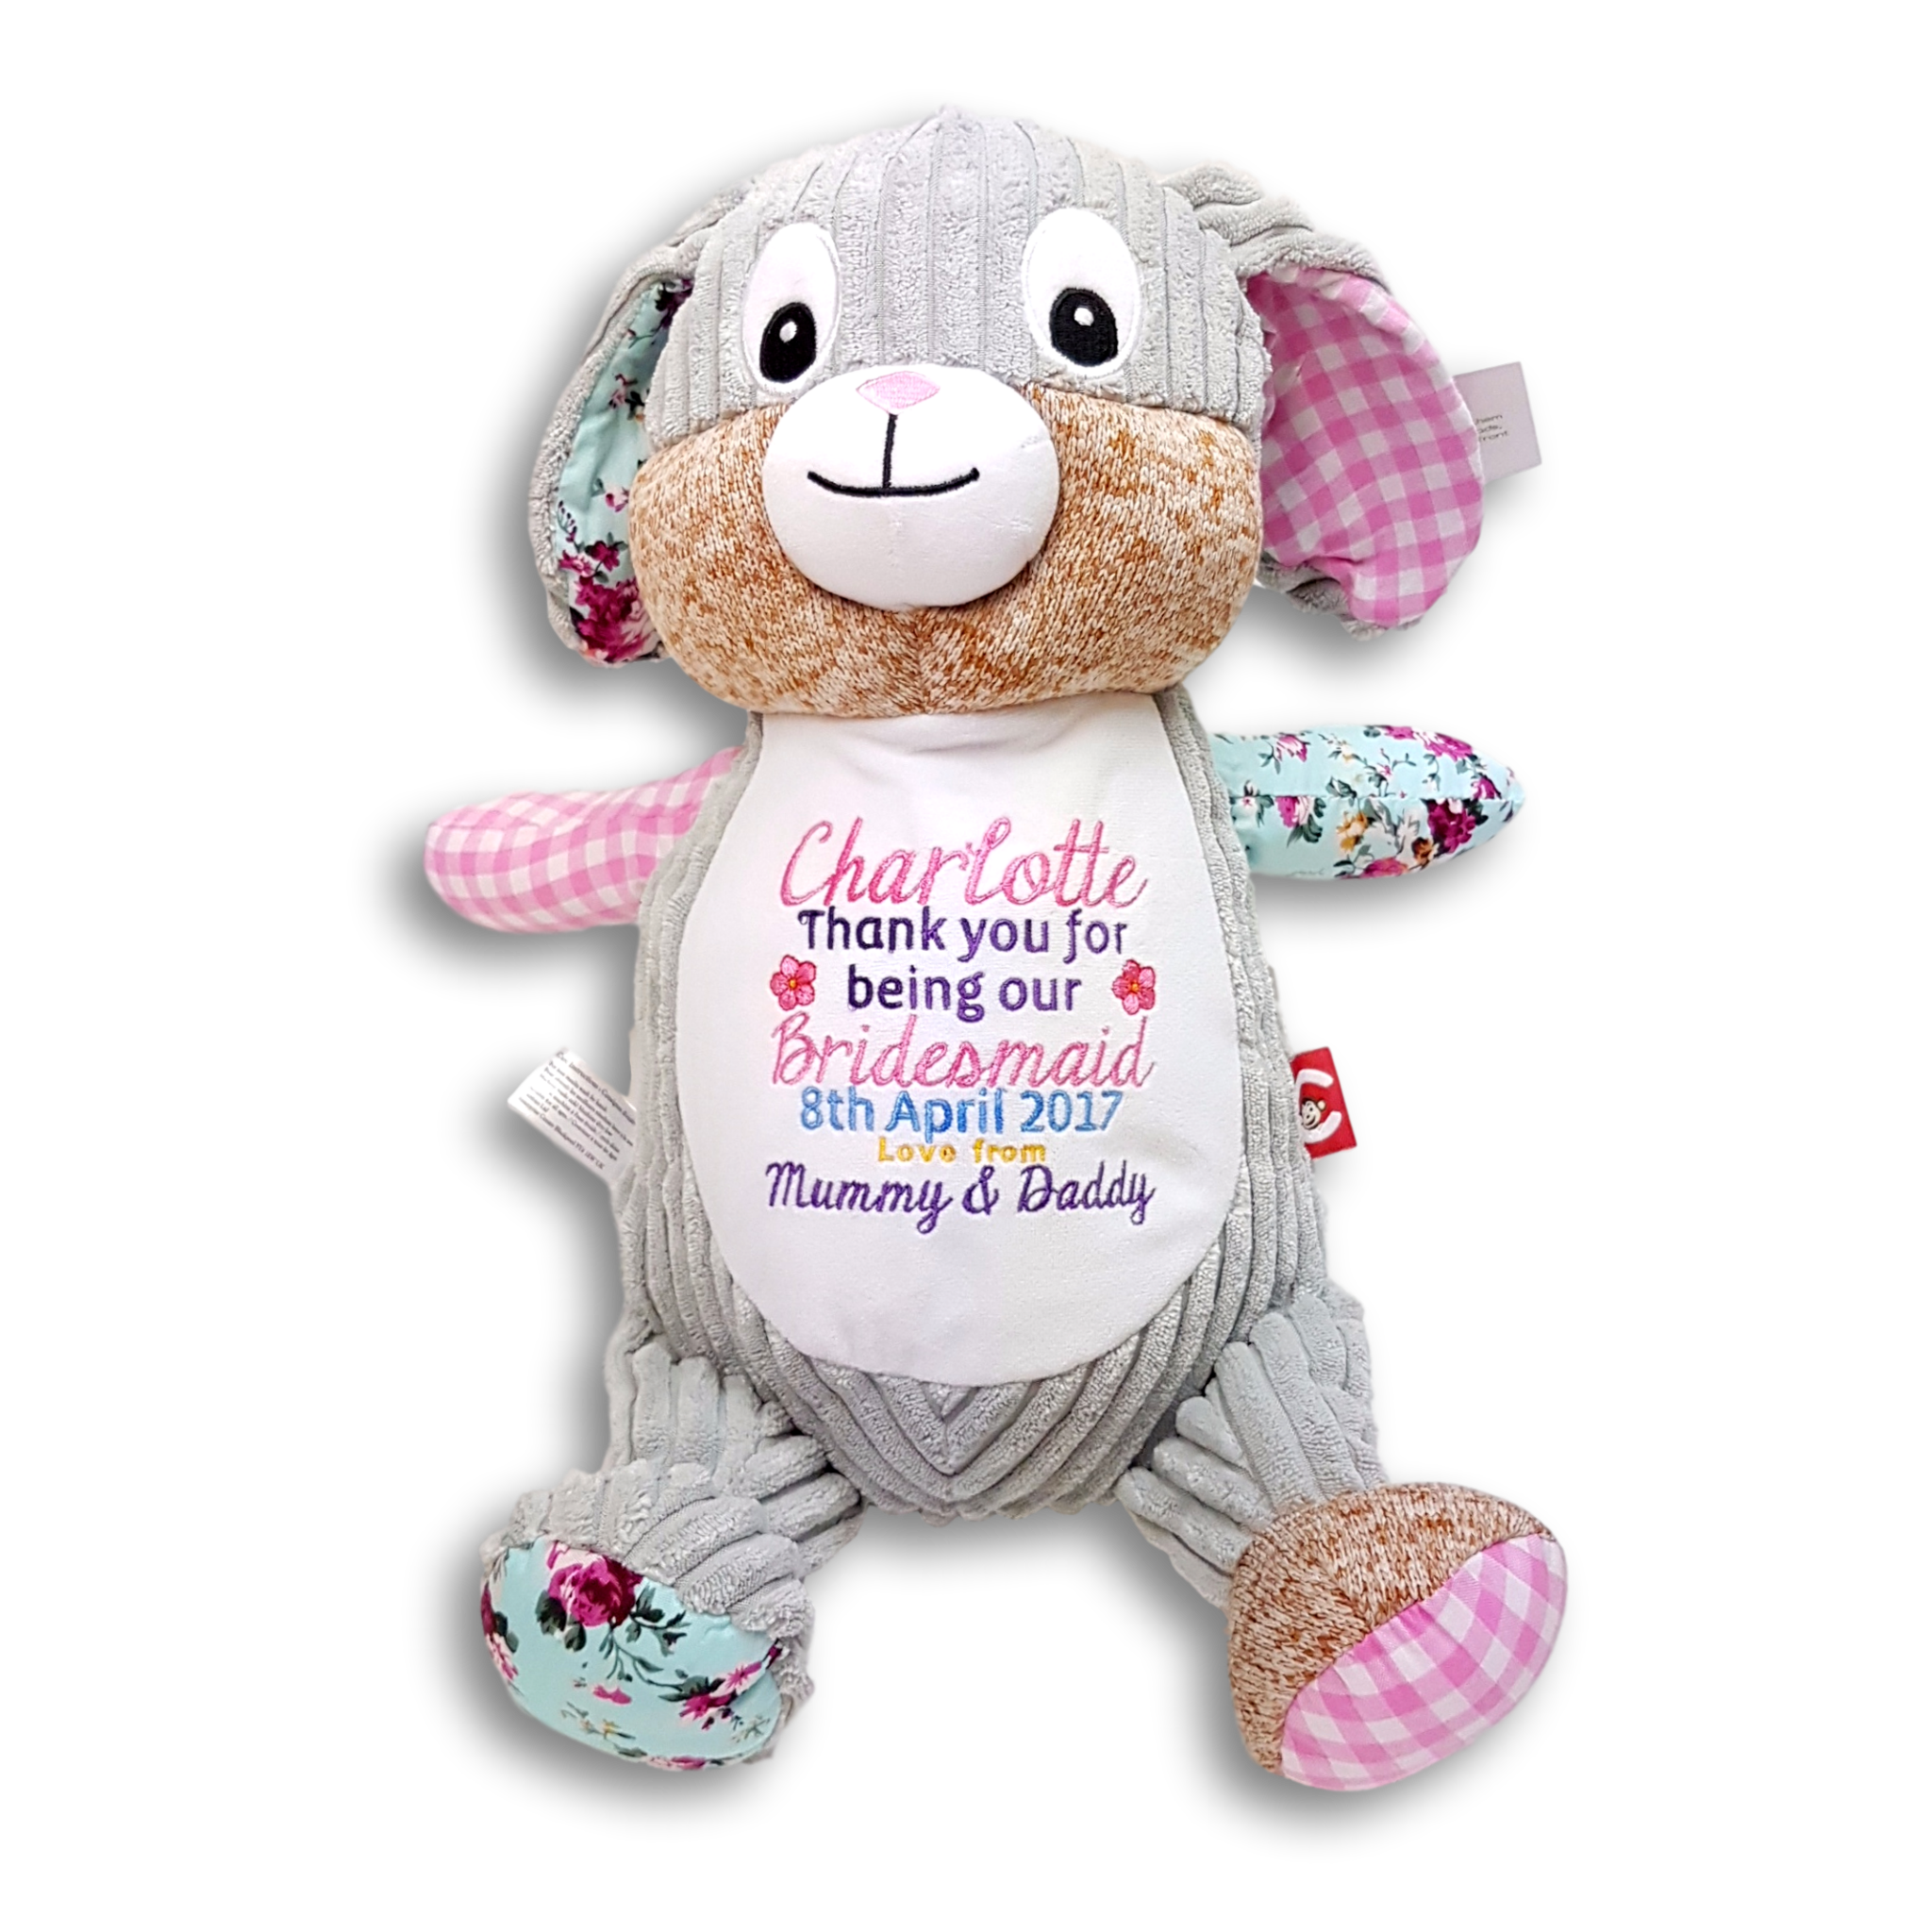 Bridesmaid Thanks Gift Personalised Embroidered Soft Toy Thankyou Birthday Present